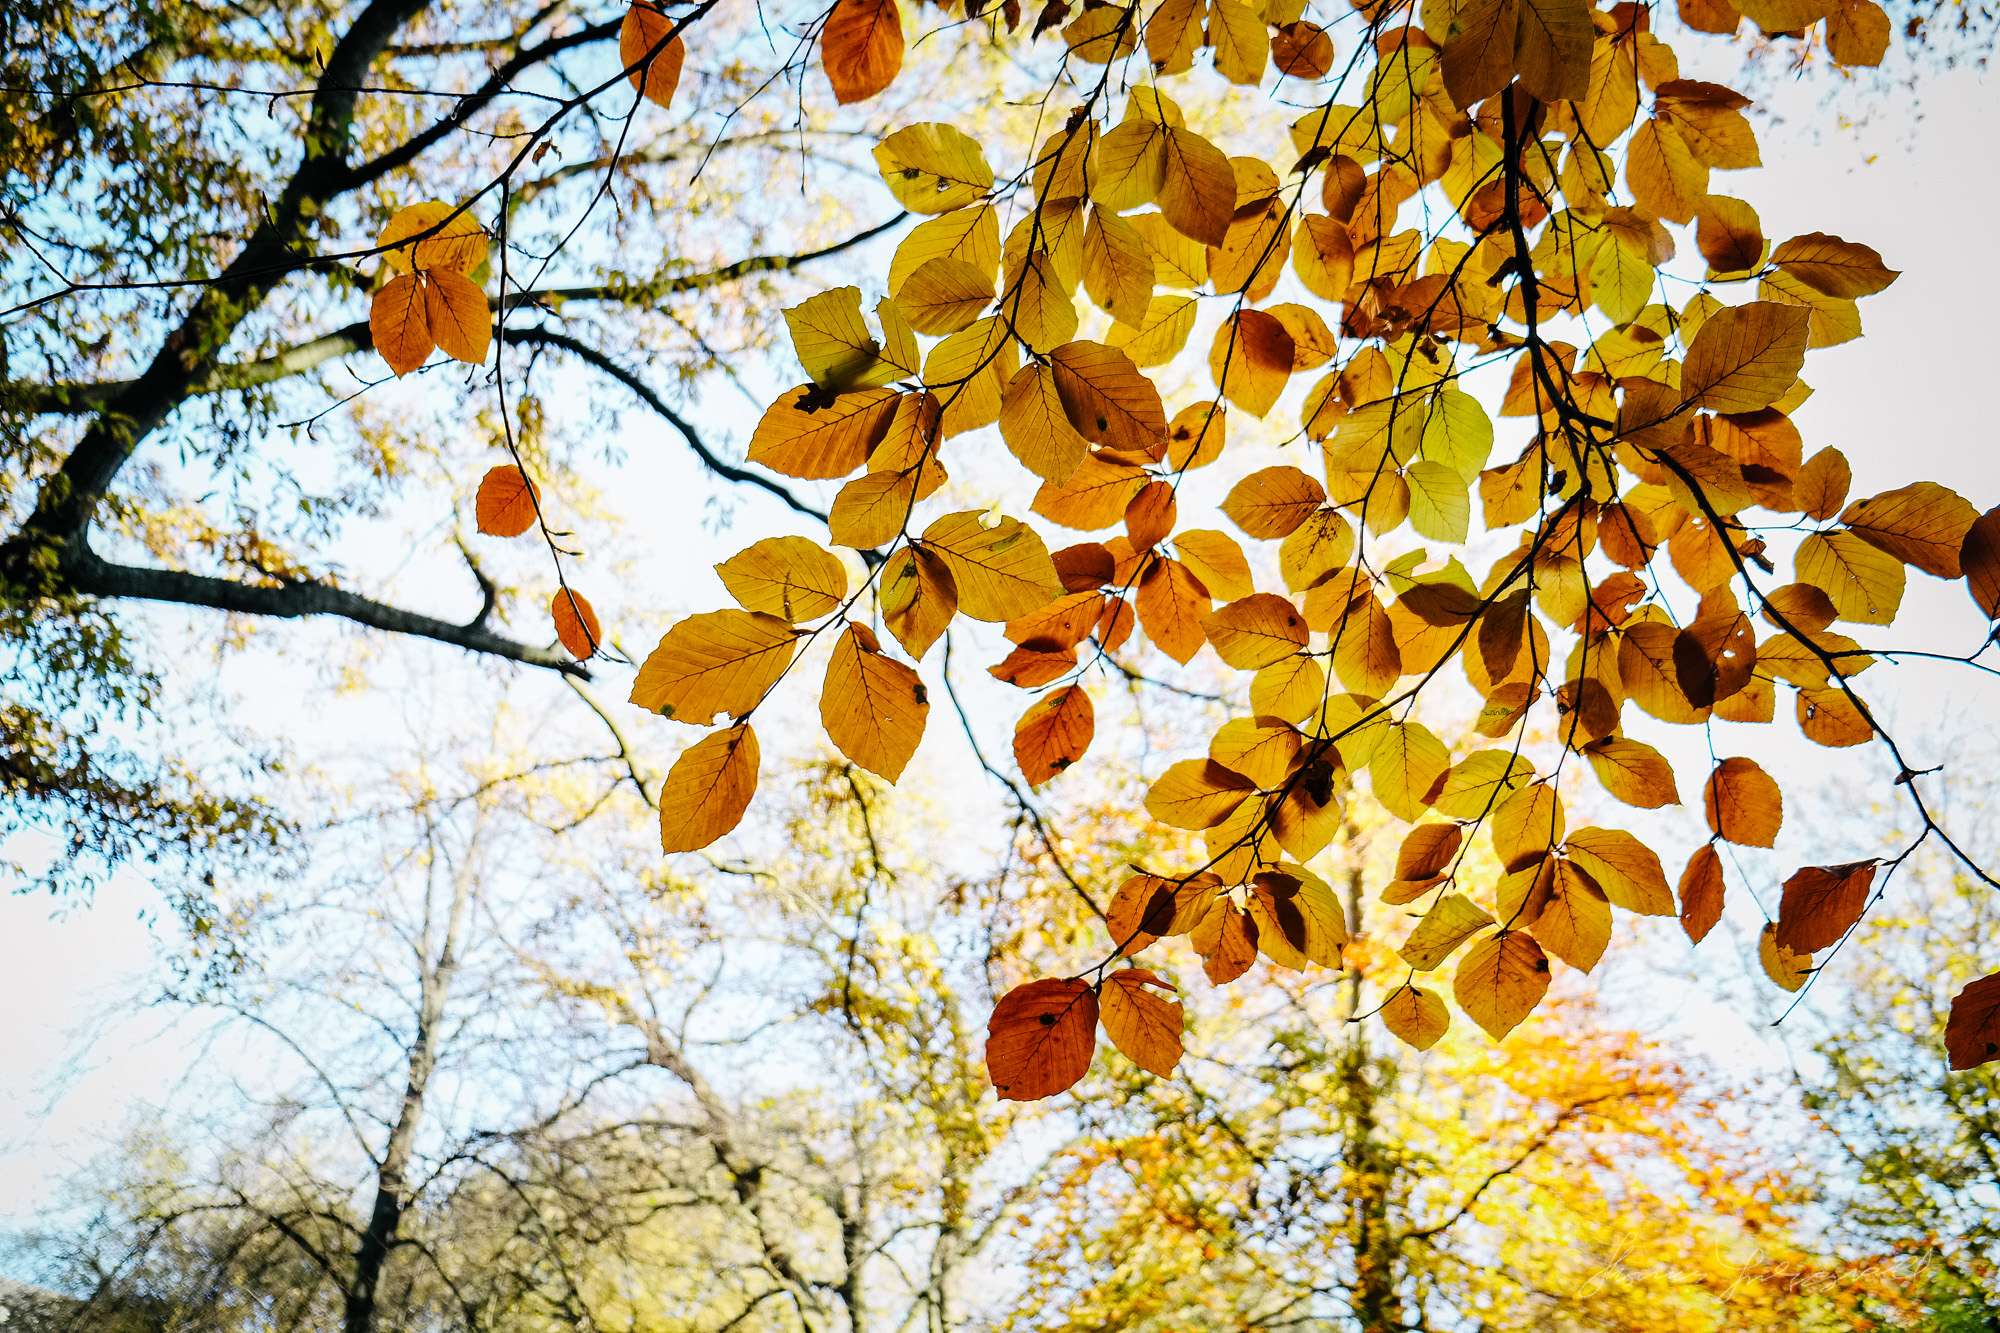 Gold and Brown leaves- Taken with a Fuji XE1